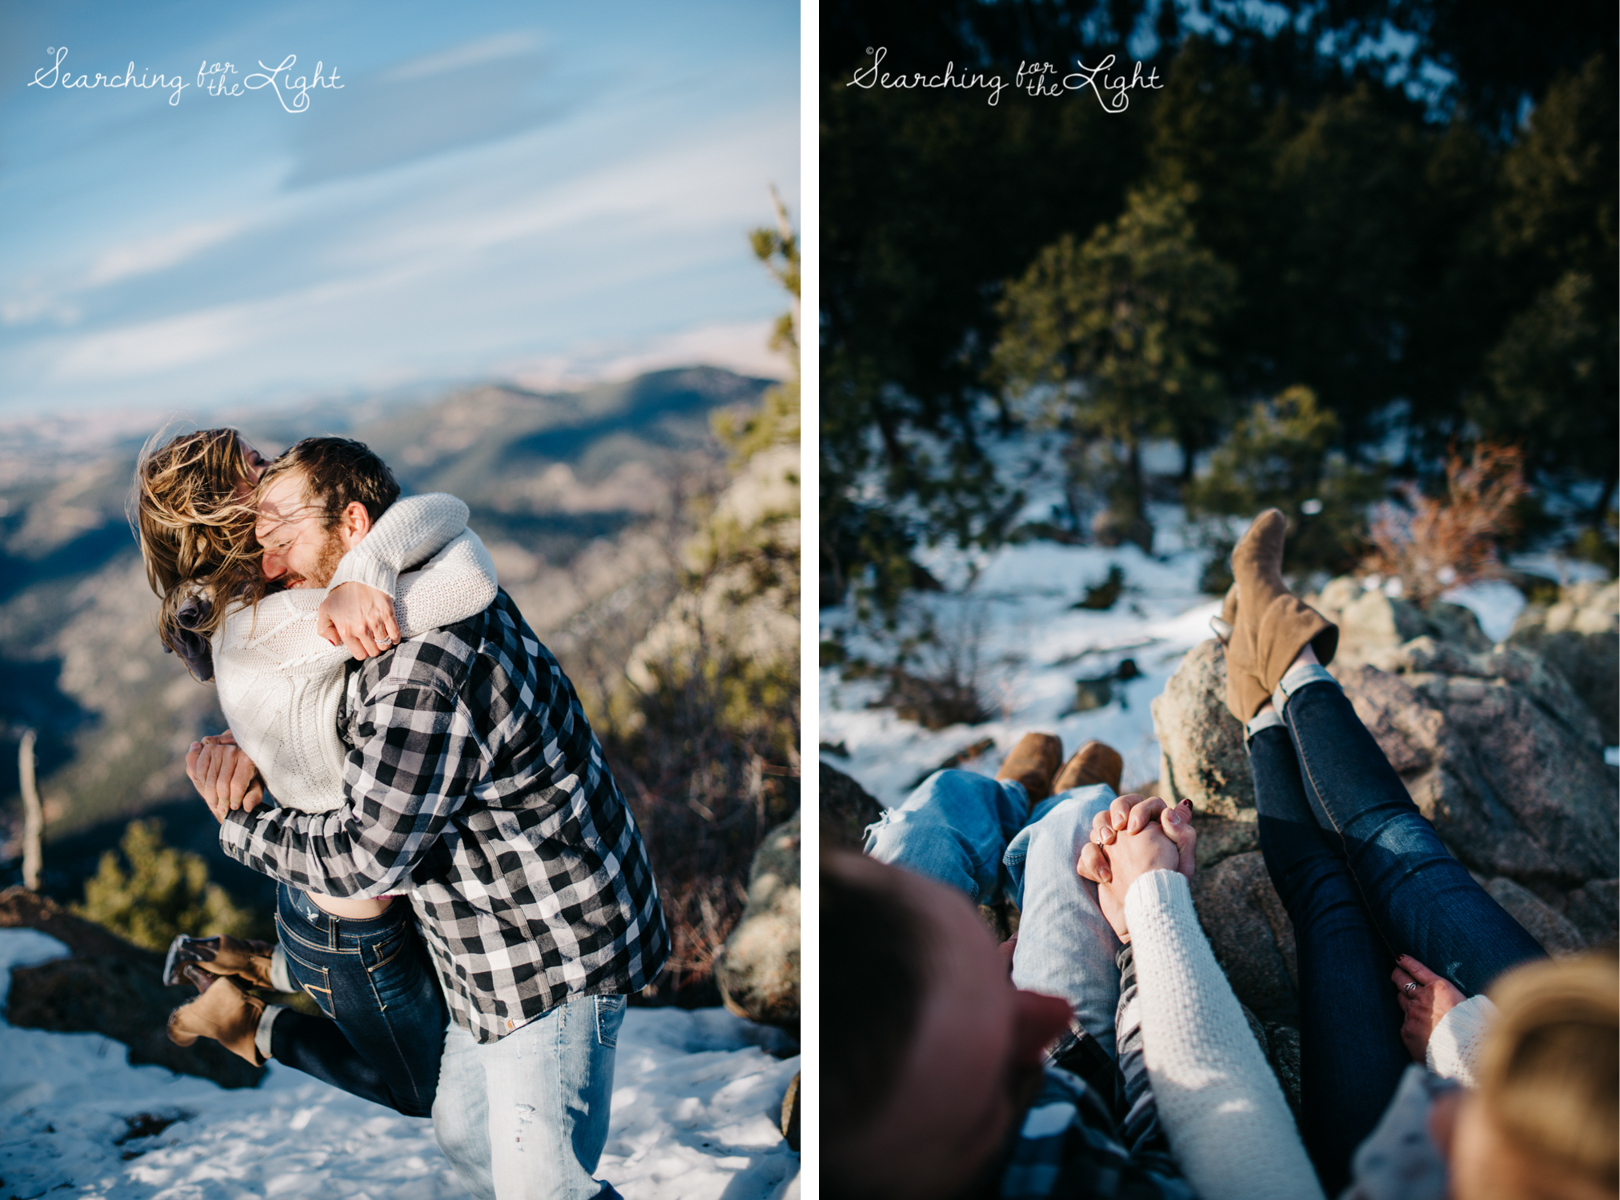 16-mountain_wedding_photographer_anniversary_photos_ jenni&kipp_395.jpg